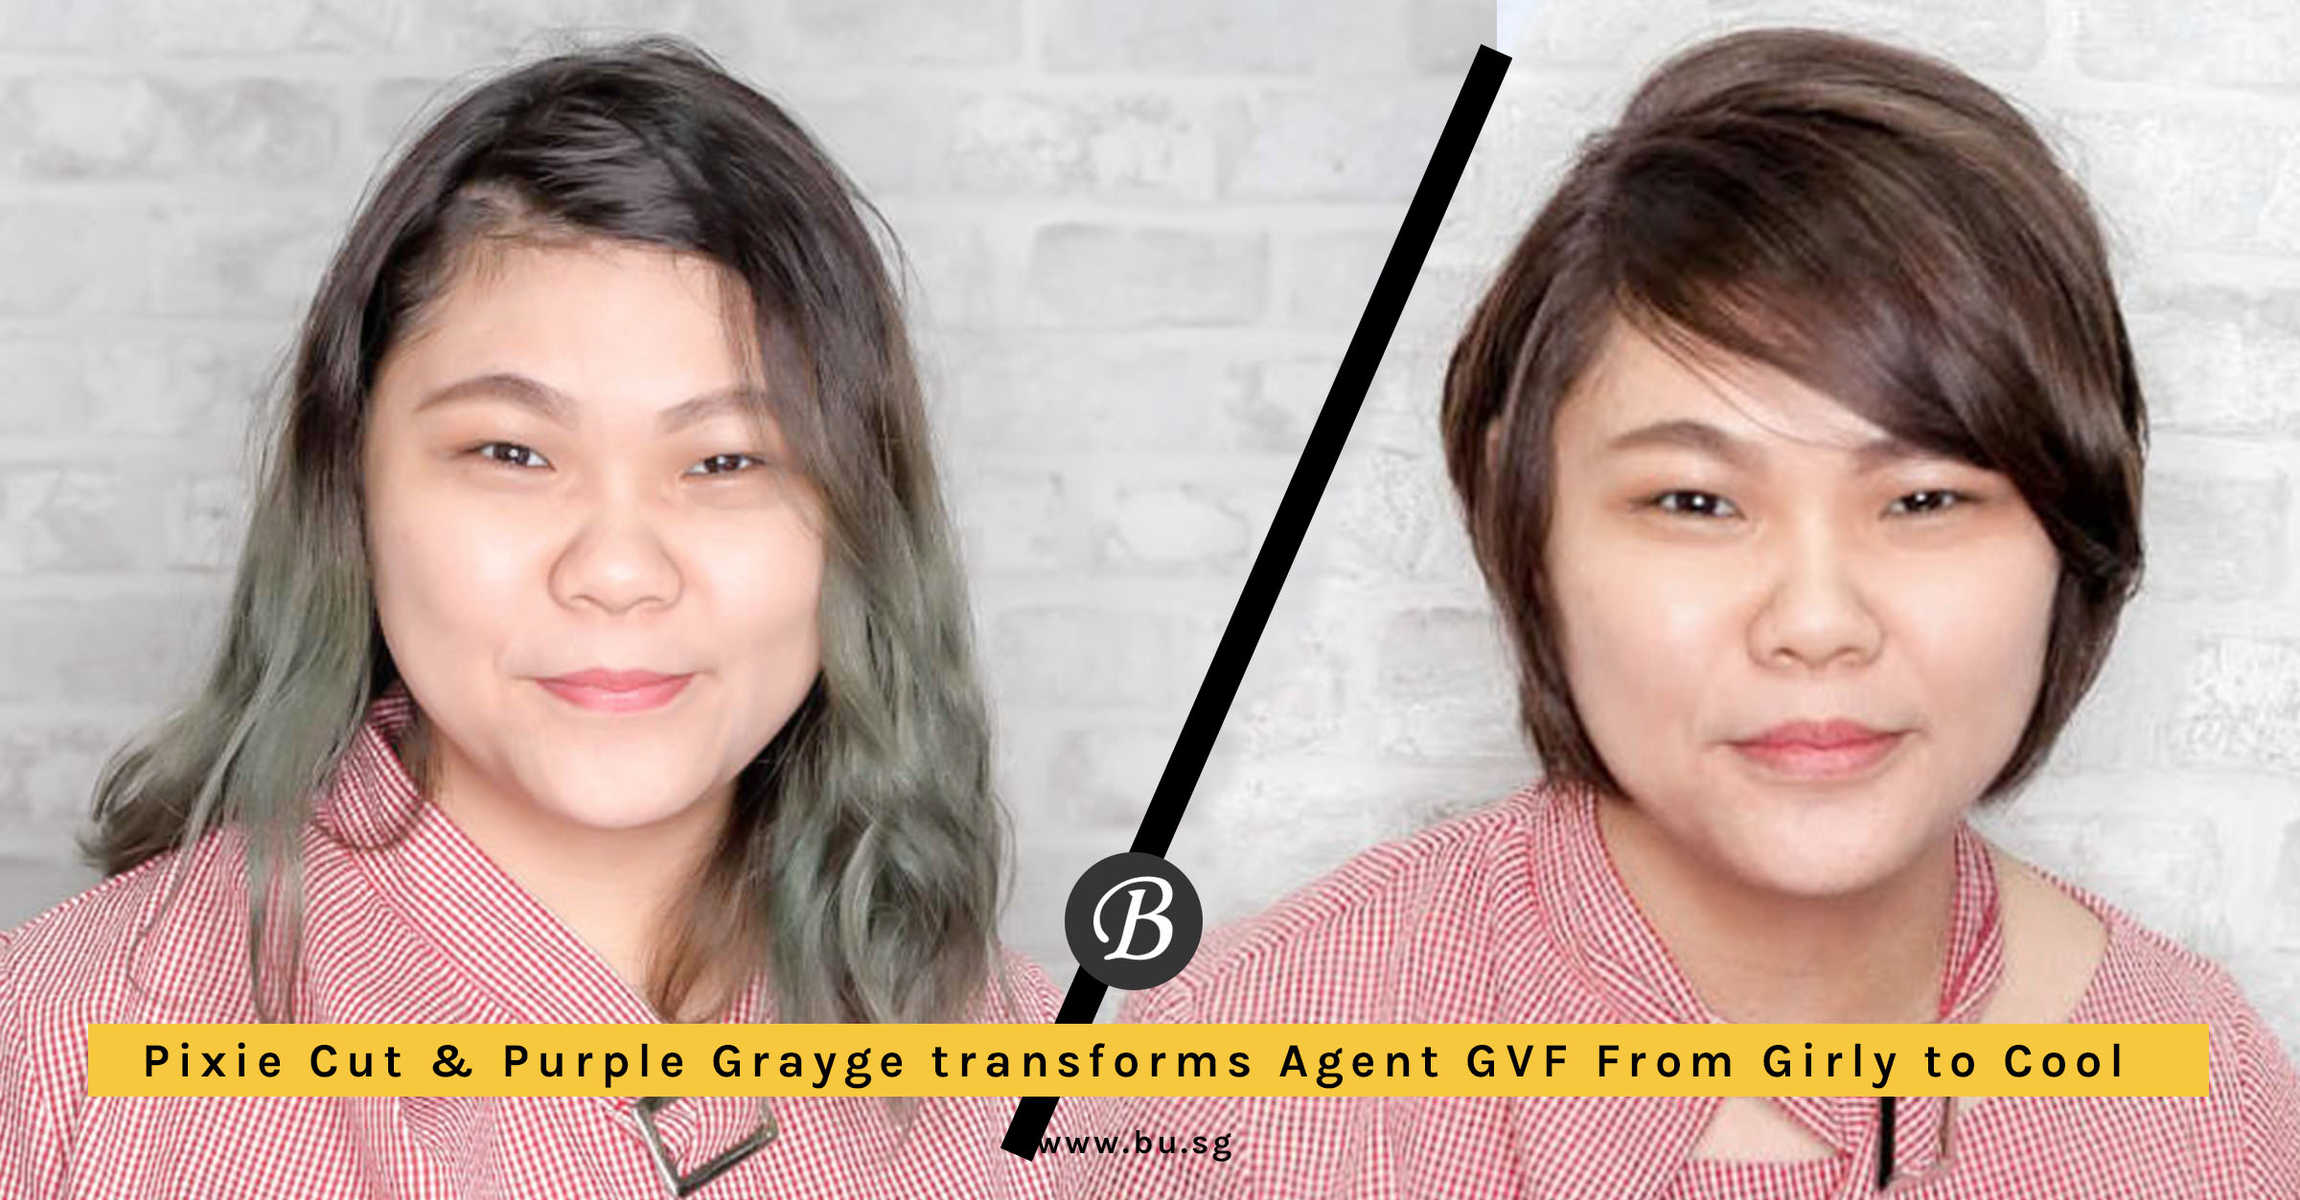 Purple Grayge Pixie Cut Transforms Agent GVF from Girly to Cool